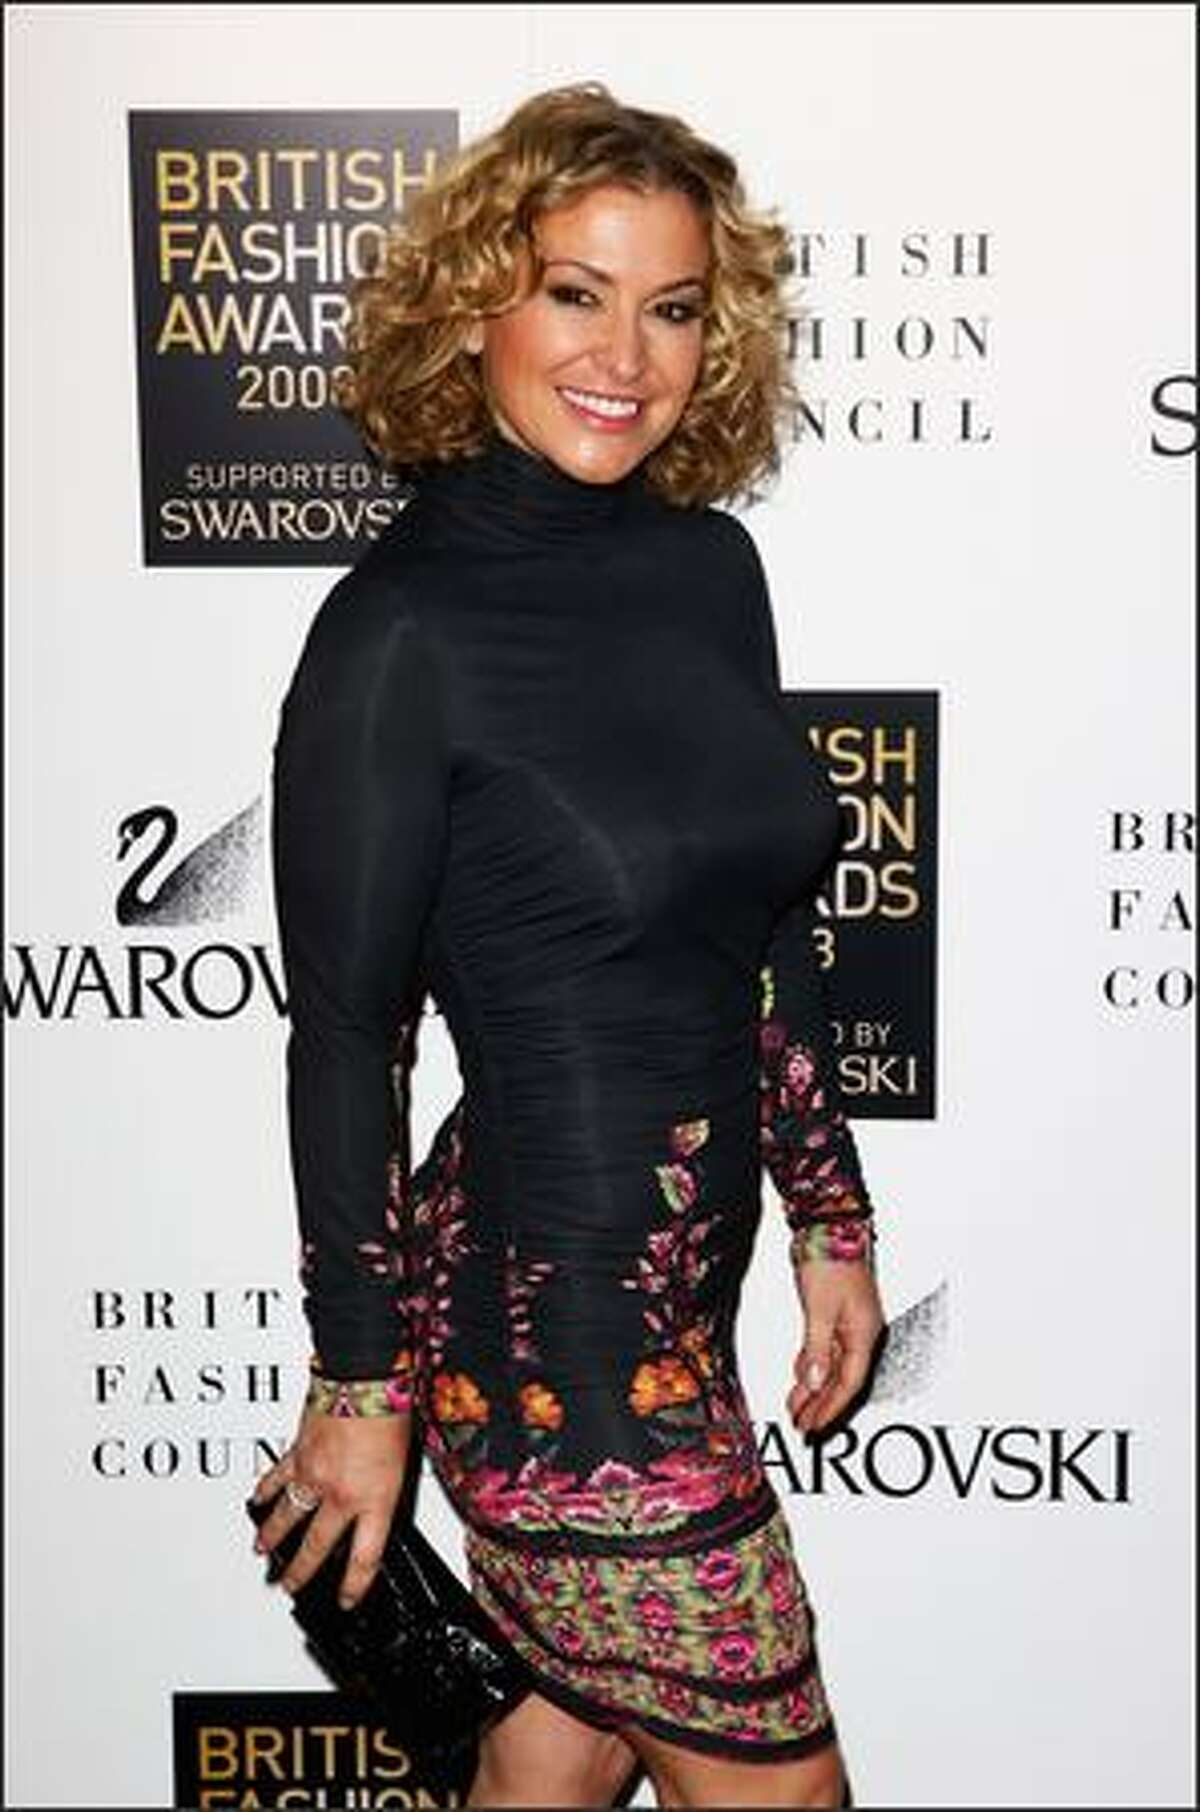 Singer Anastascia attends the British Fashion Awards 2008 held at The Lawrence Hall in London, England.